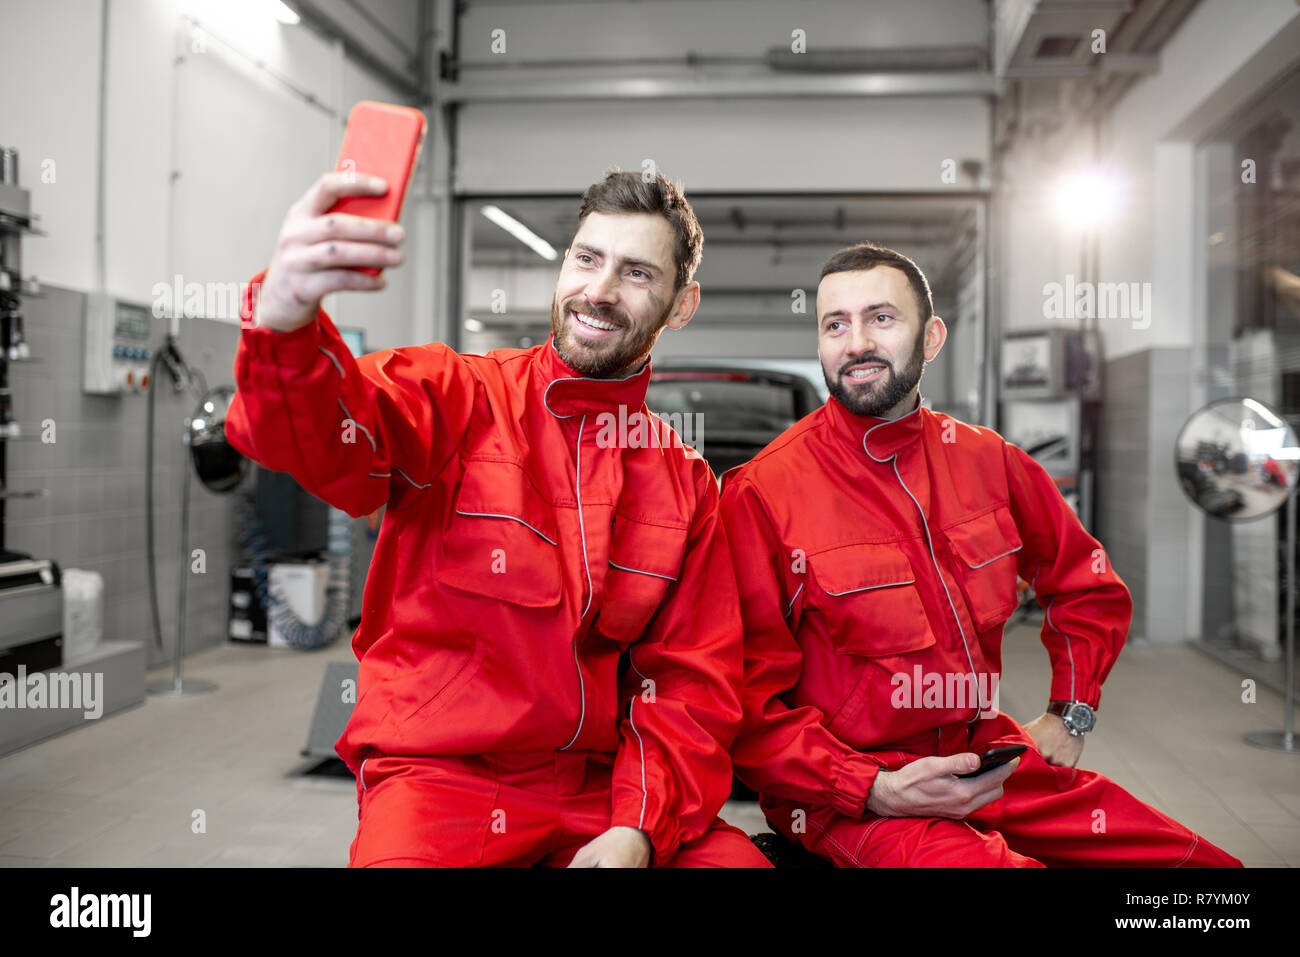 Car Service Workers In Red Uniform Making Selfie Photo With Phone